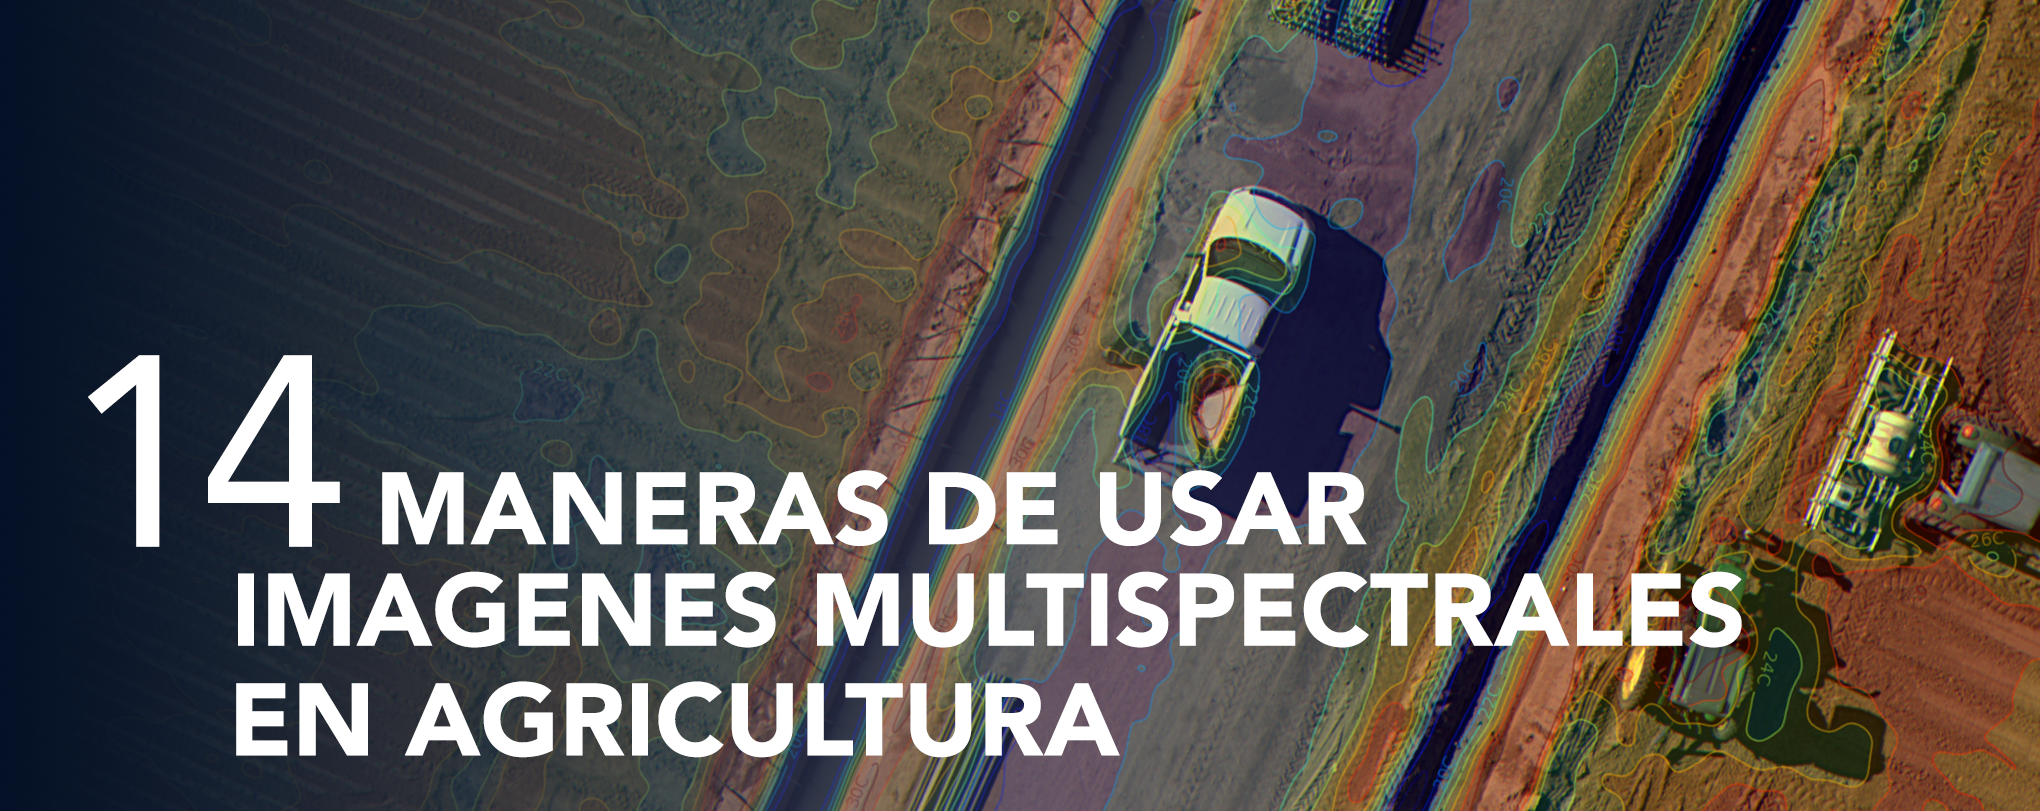 Multispectral_Guide_Webbanner_Spanish.png